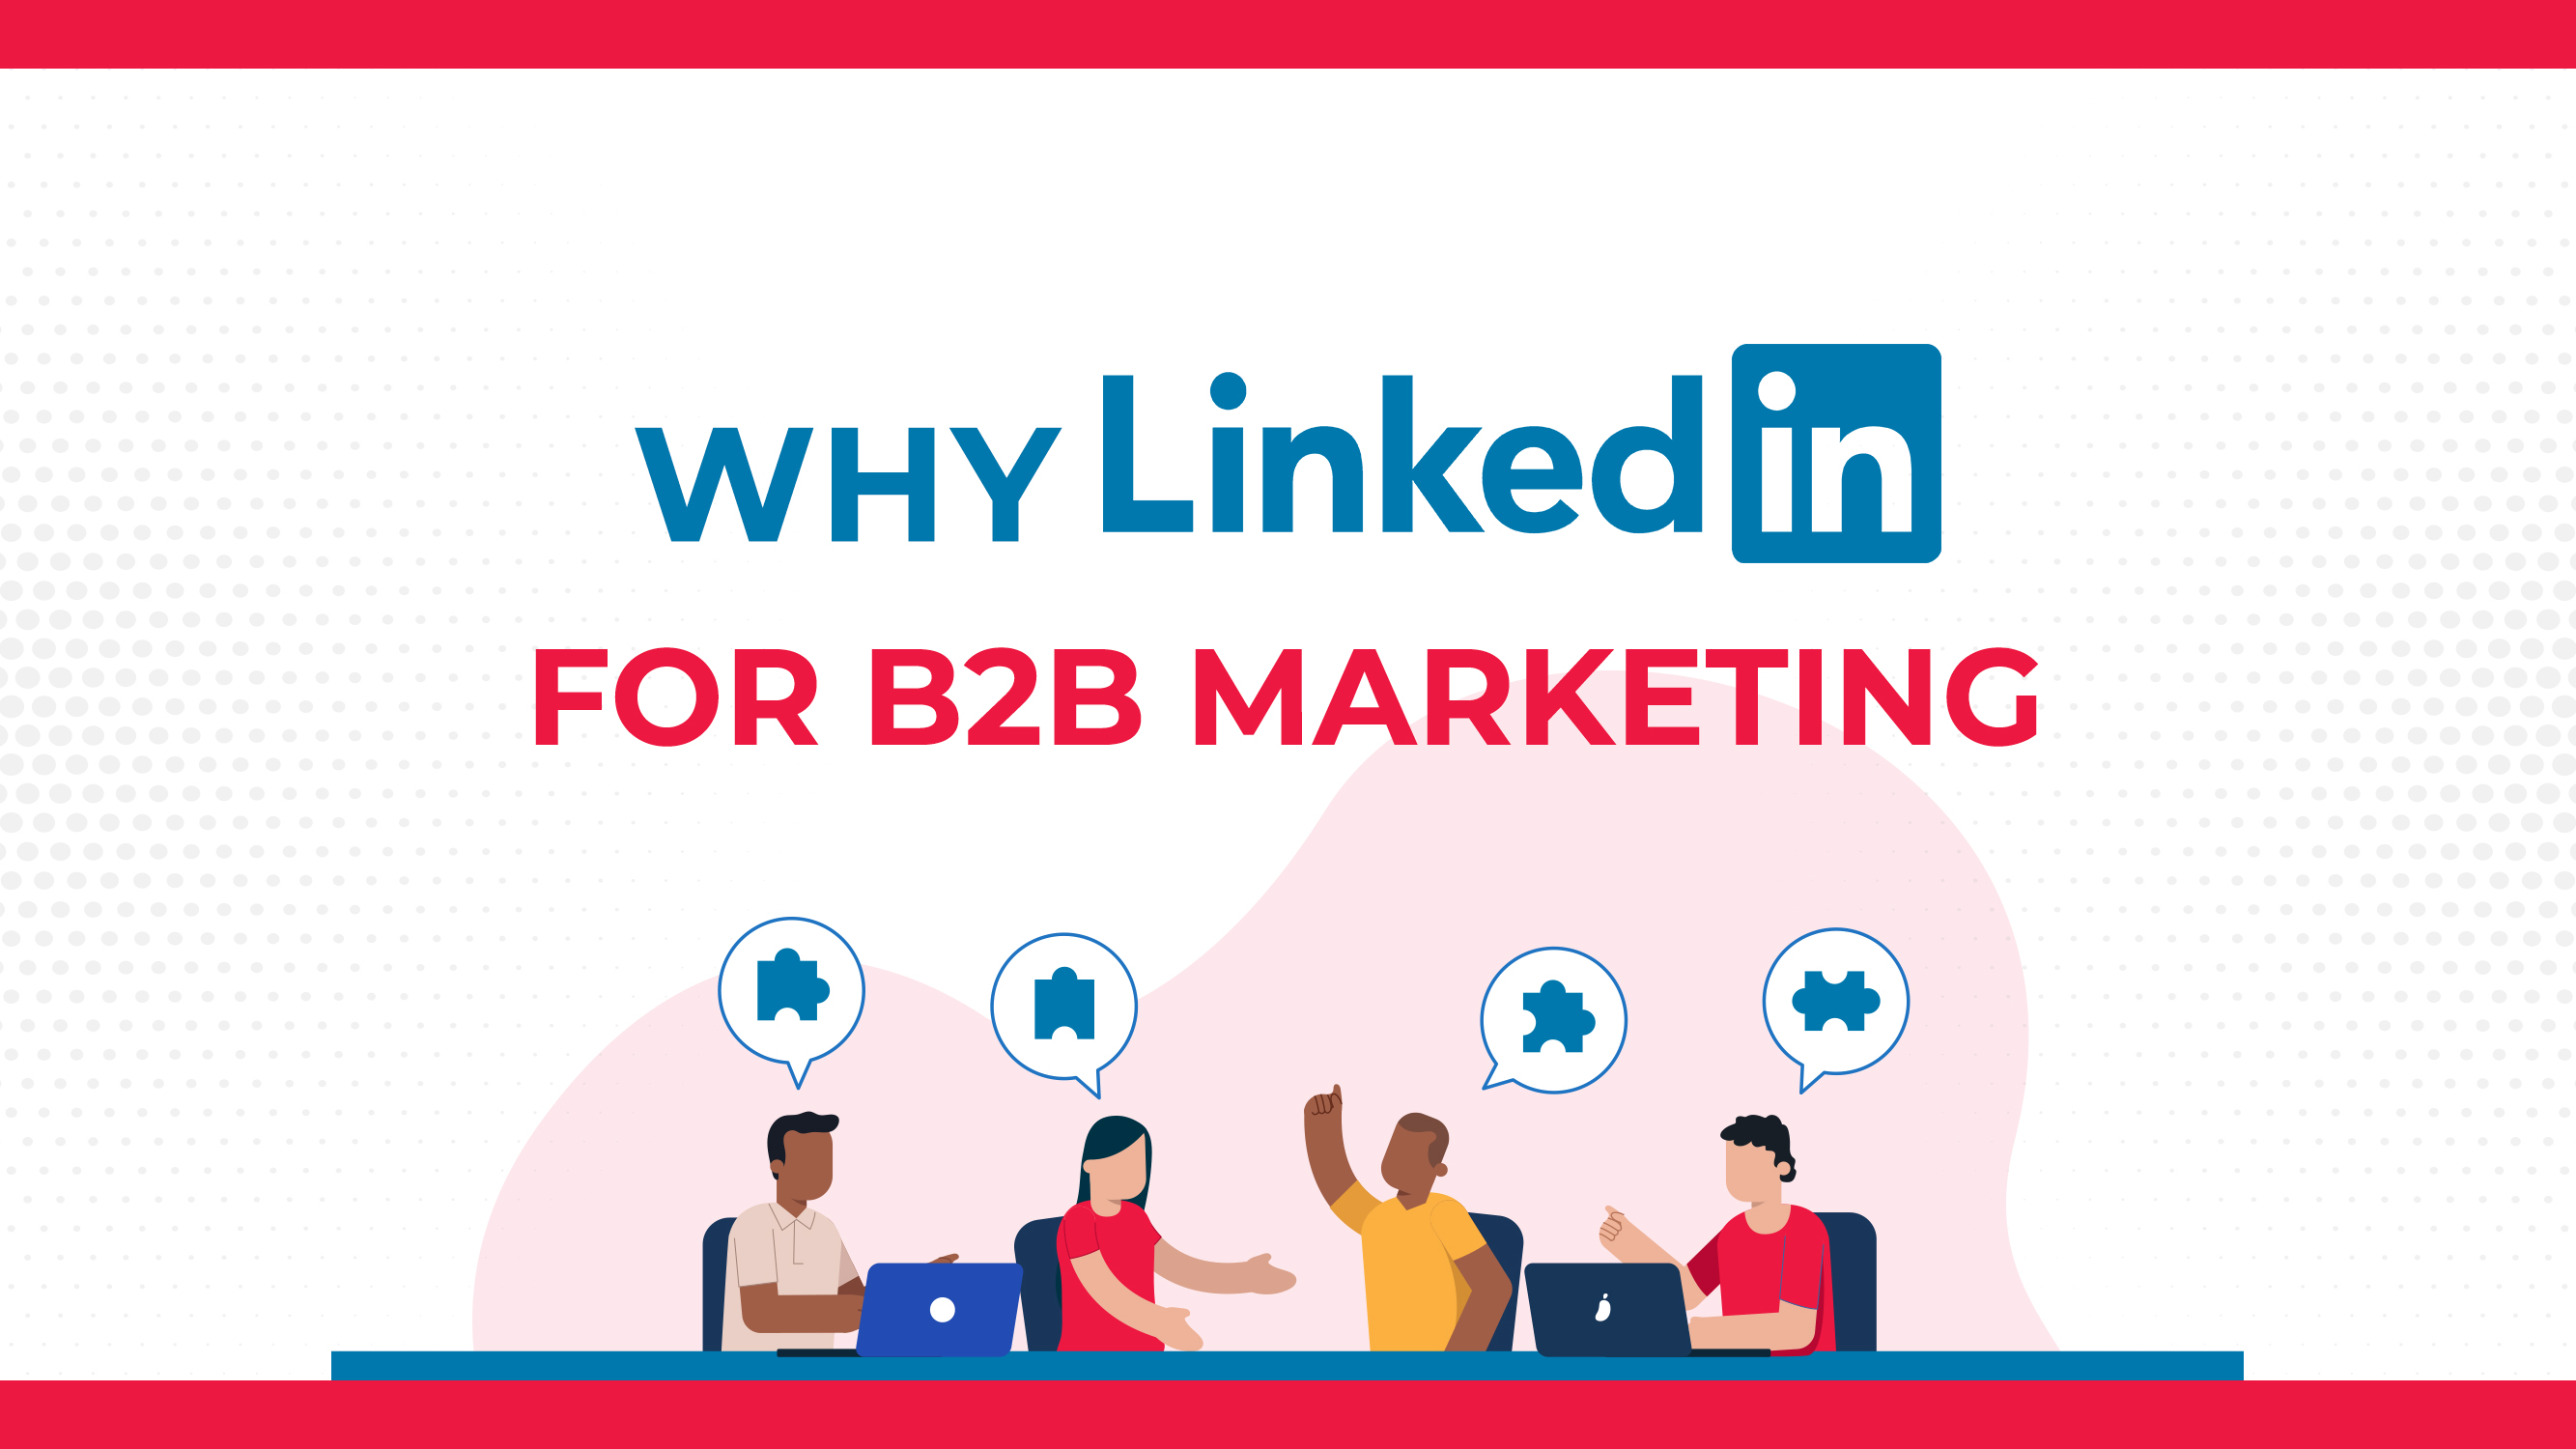 Why Choose LinkedIn For B2B Marketing?